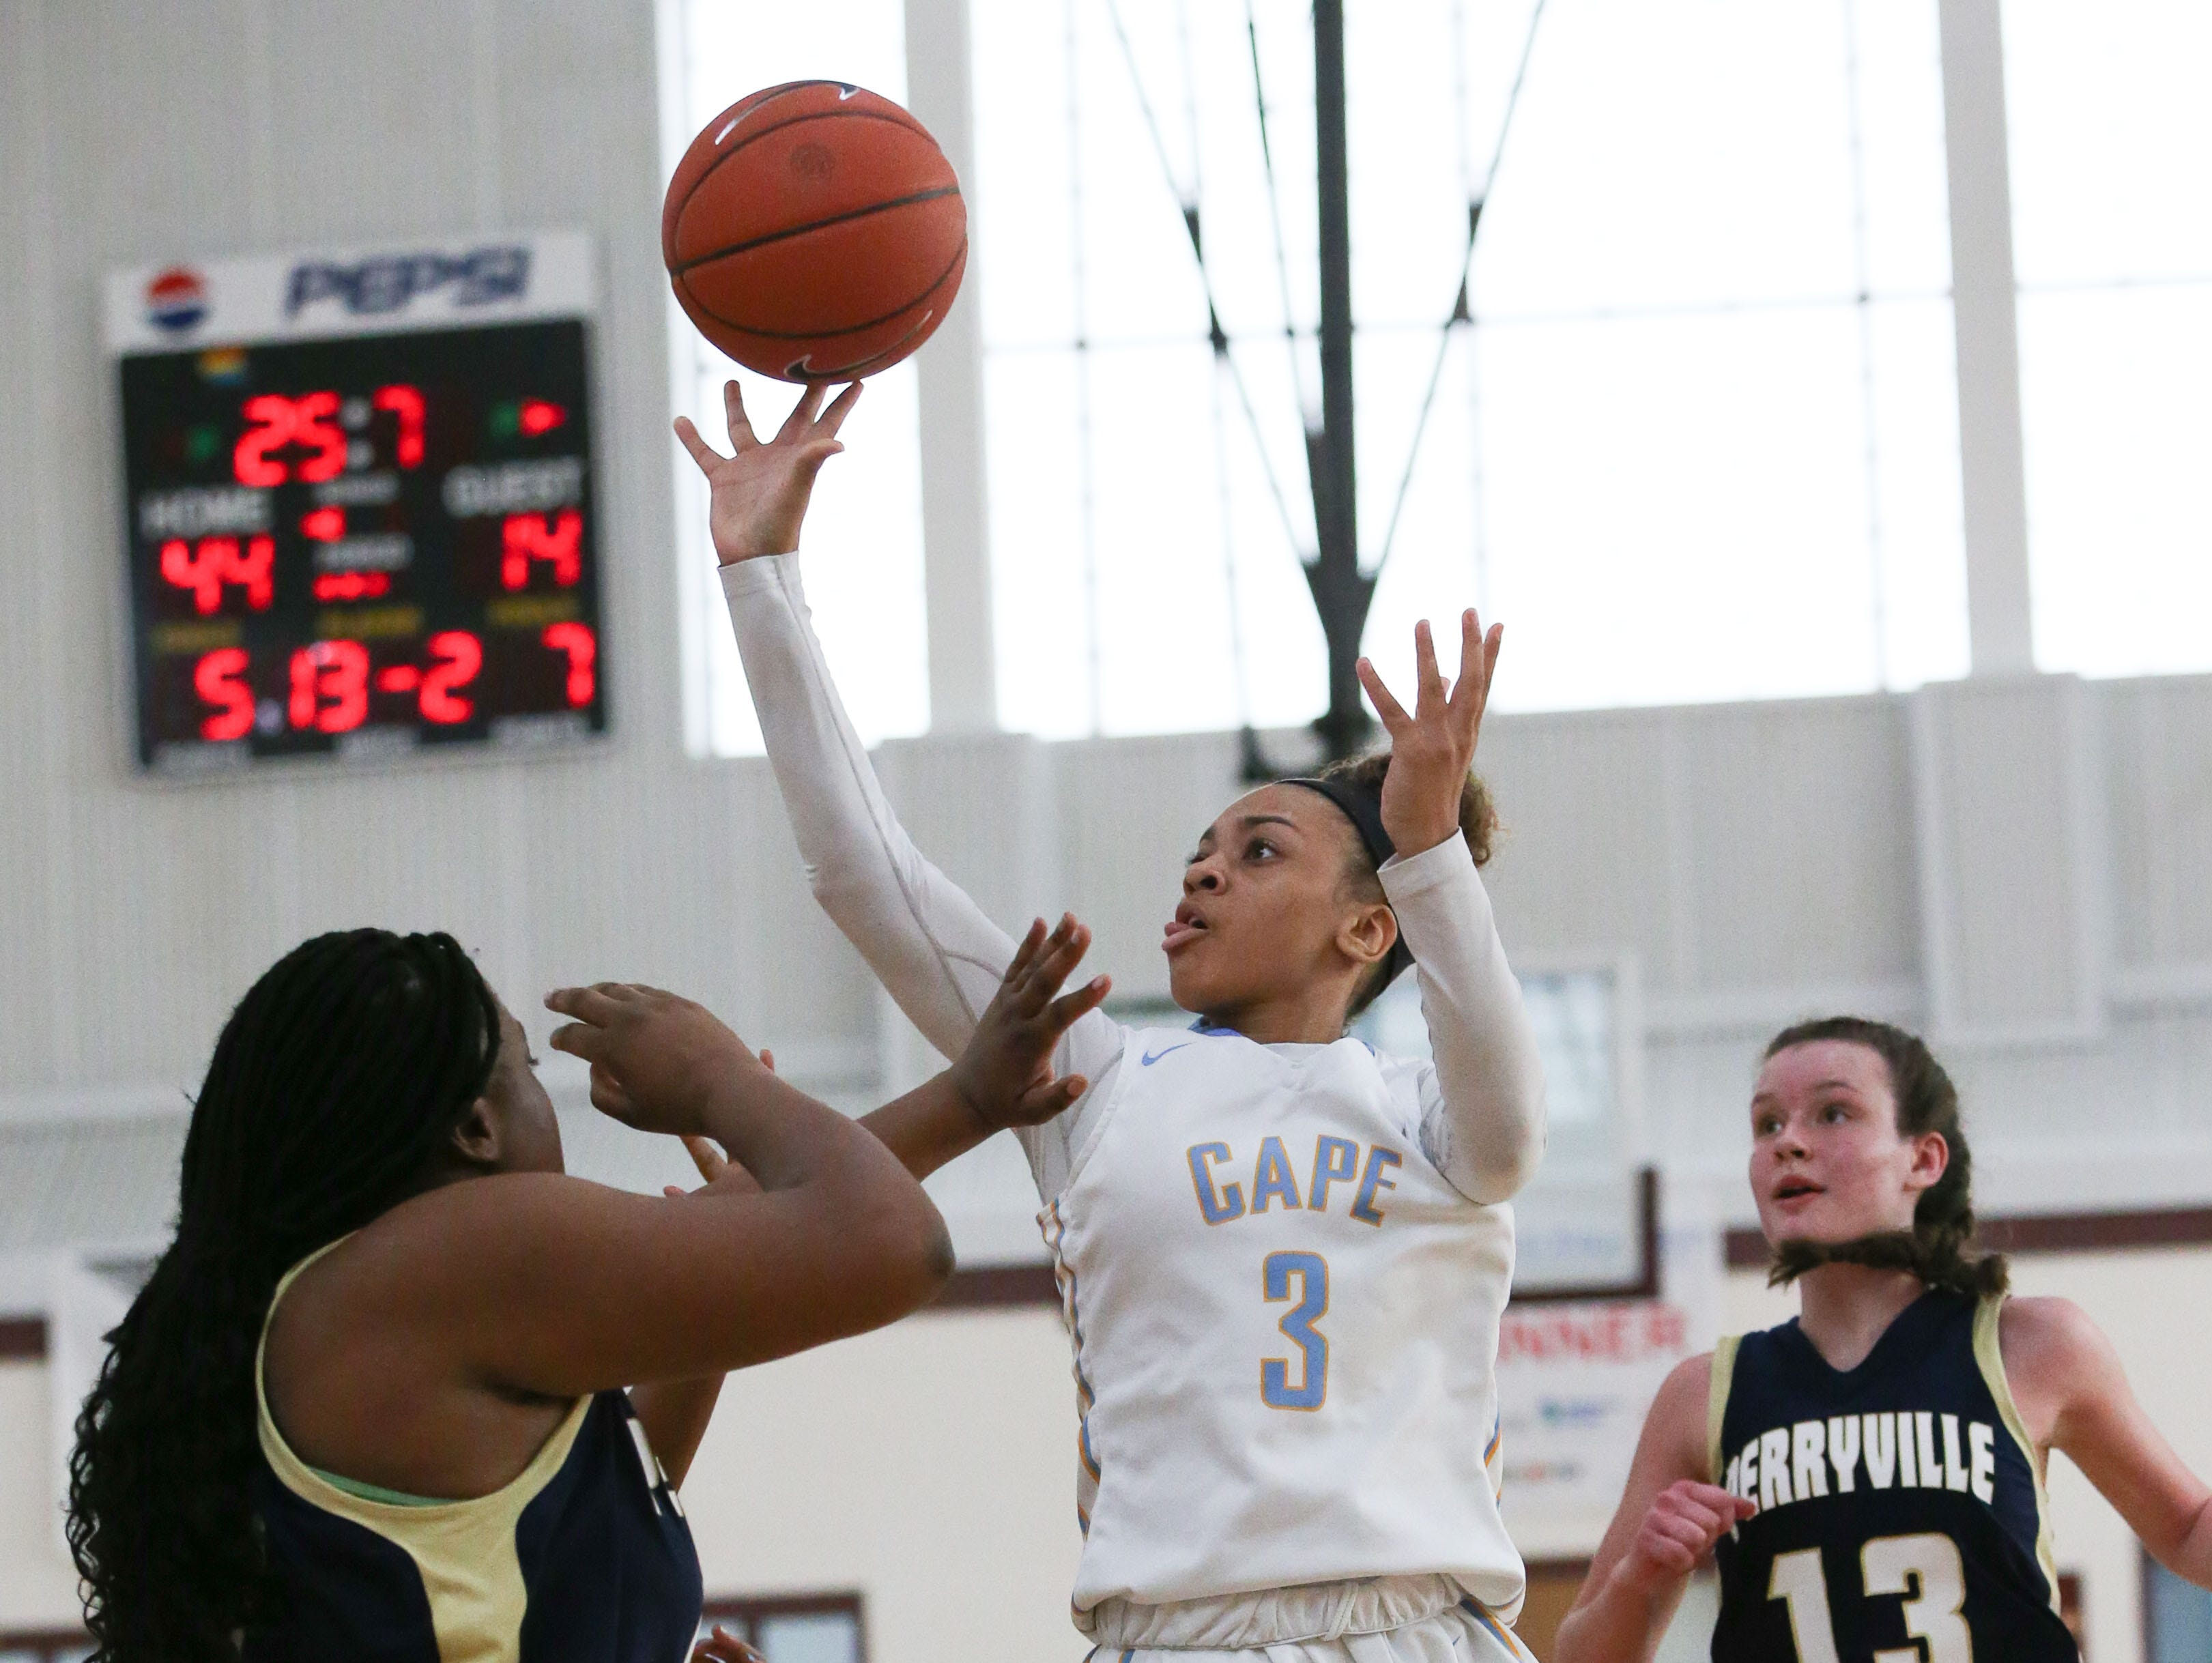 Cape Henlopen guard Dania Cannon puts up a shot in the third quarter while surrounded by Perryville defenders in the opening round of the New Castle Insurance Cup at the Diamond State Classic Tuesday.